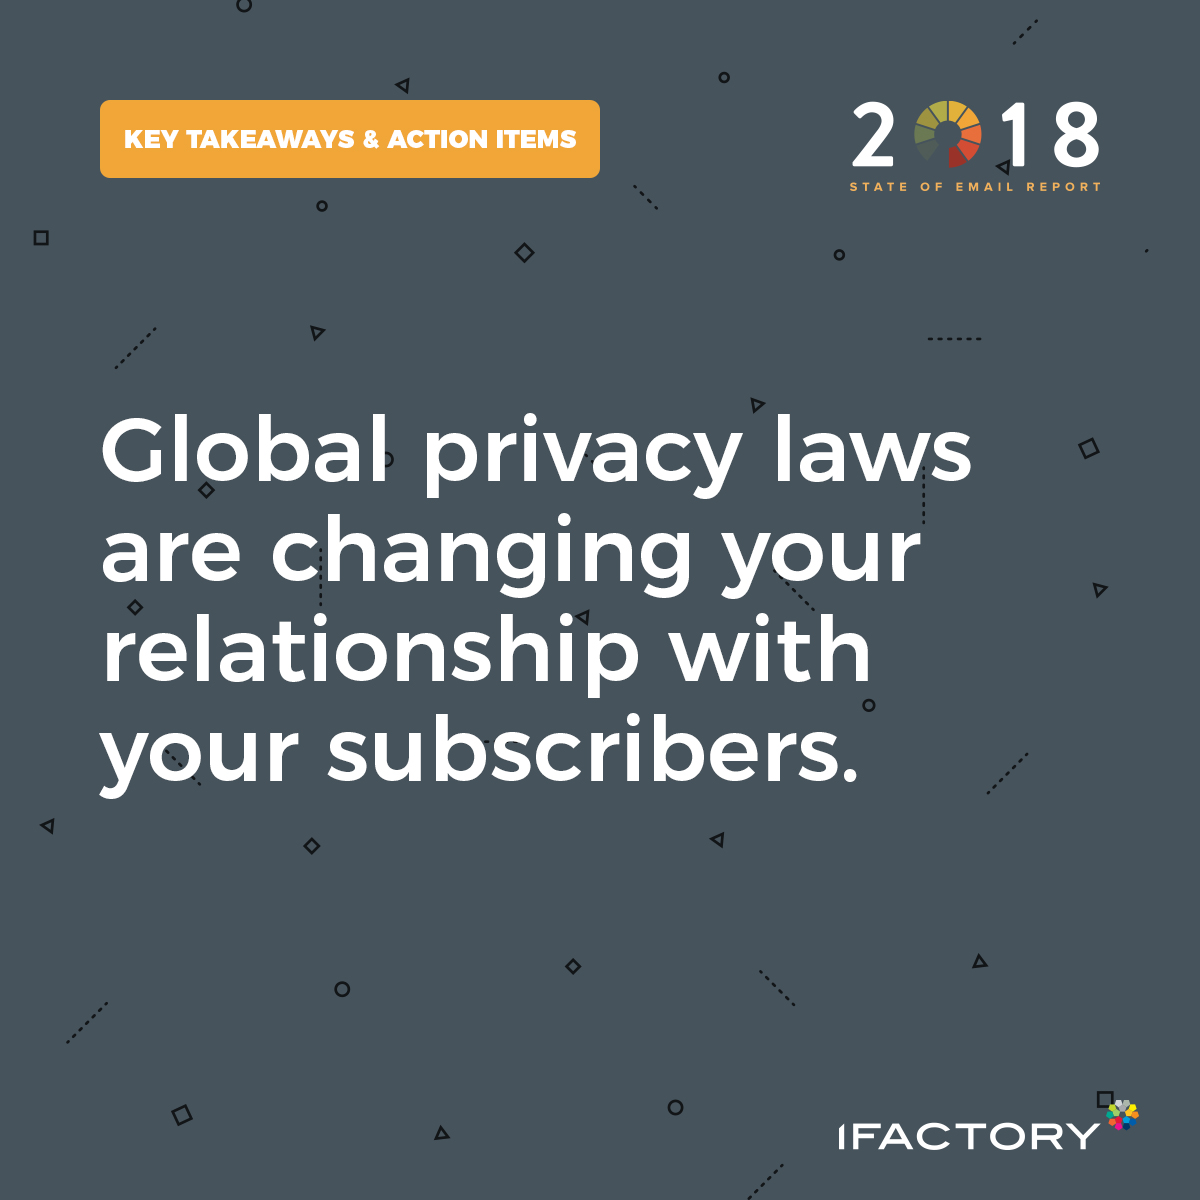 Global privacy laws are changing your relationship with your subscribers.